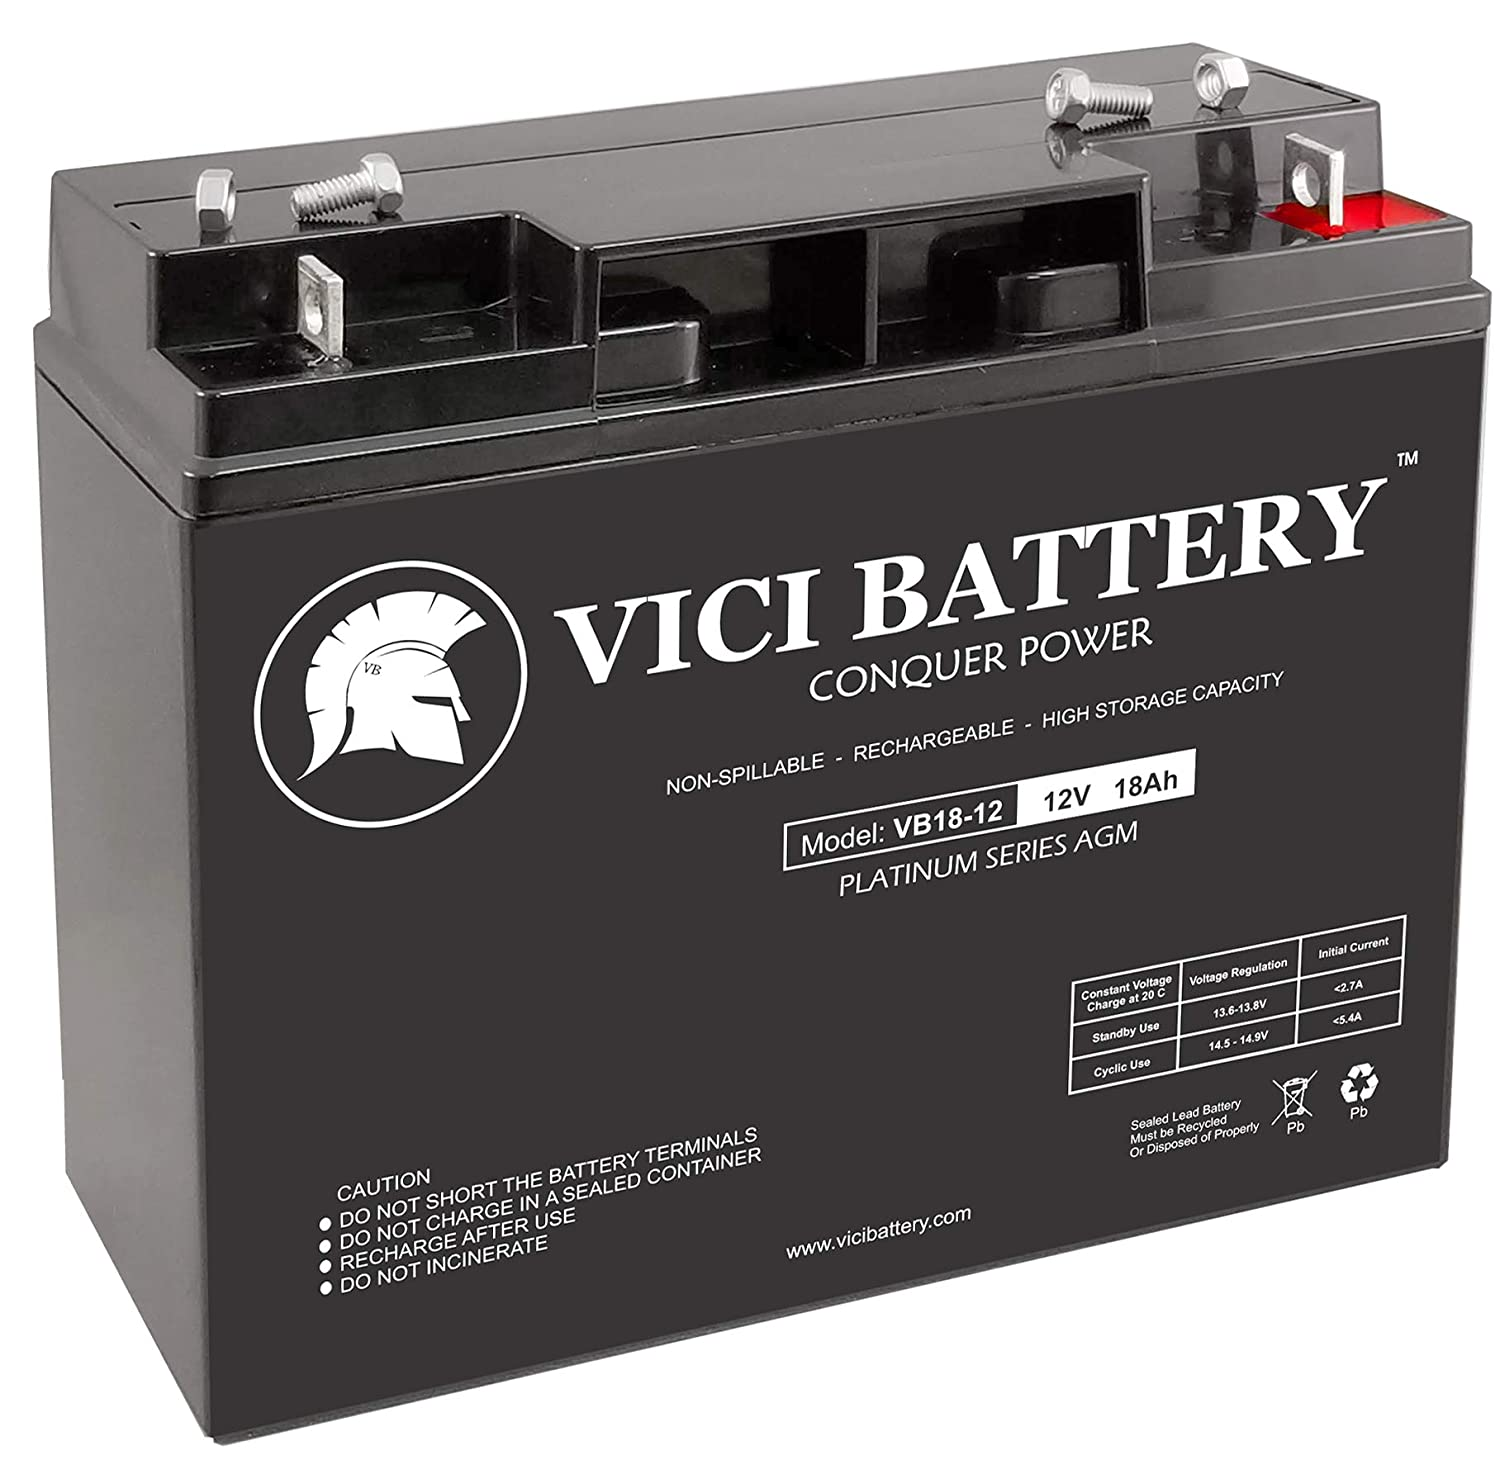 12v 18ah Battery >> Amazon Com Vici Battery Vb18 12 12v 18ah Replacement For Coopower